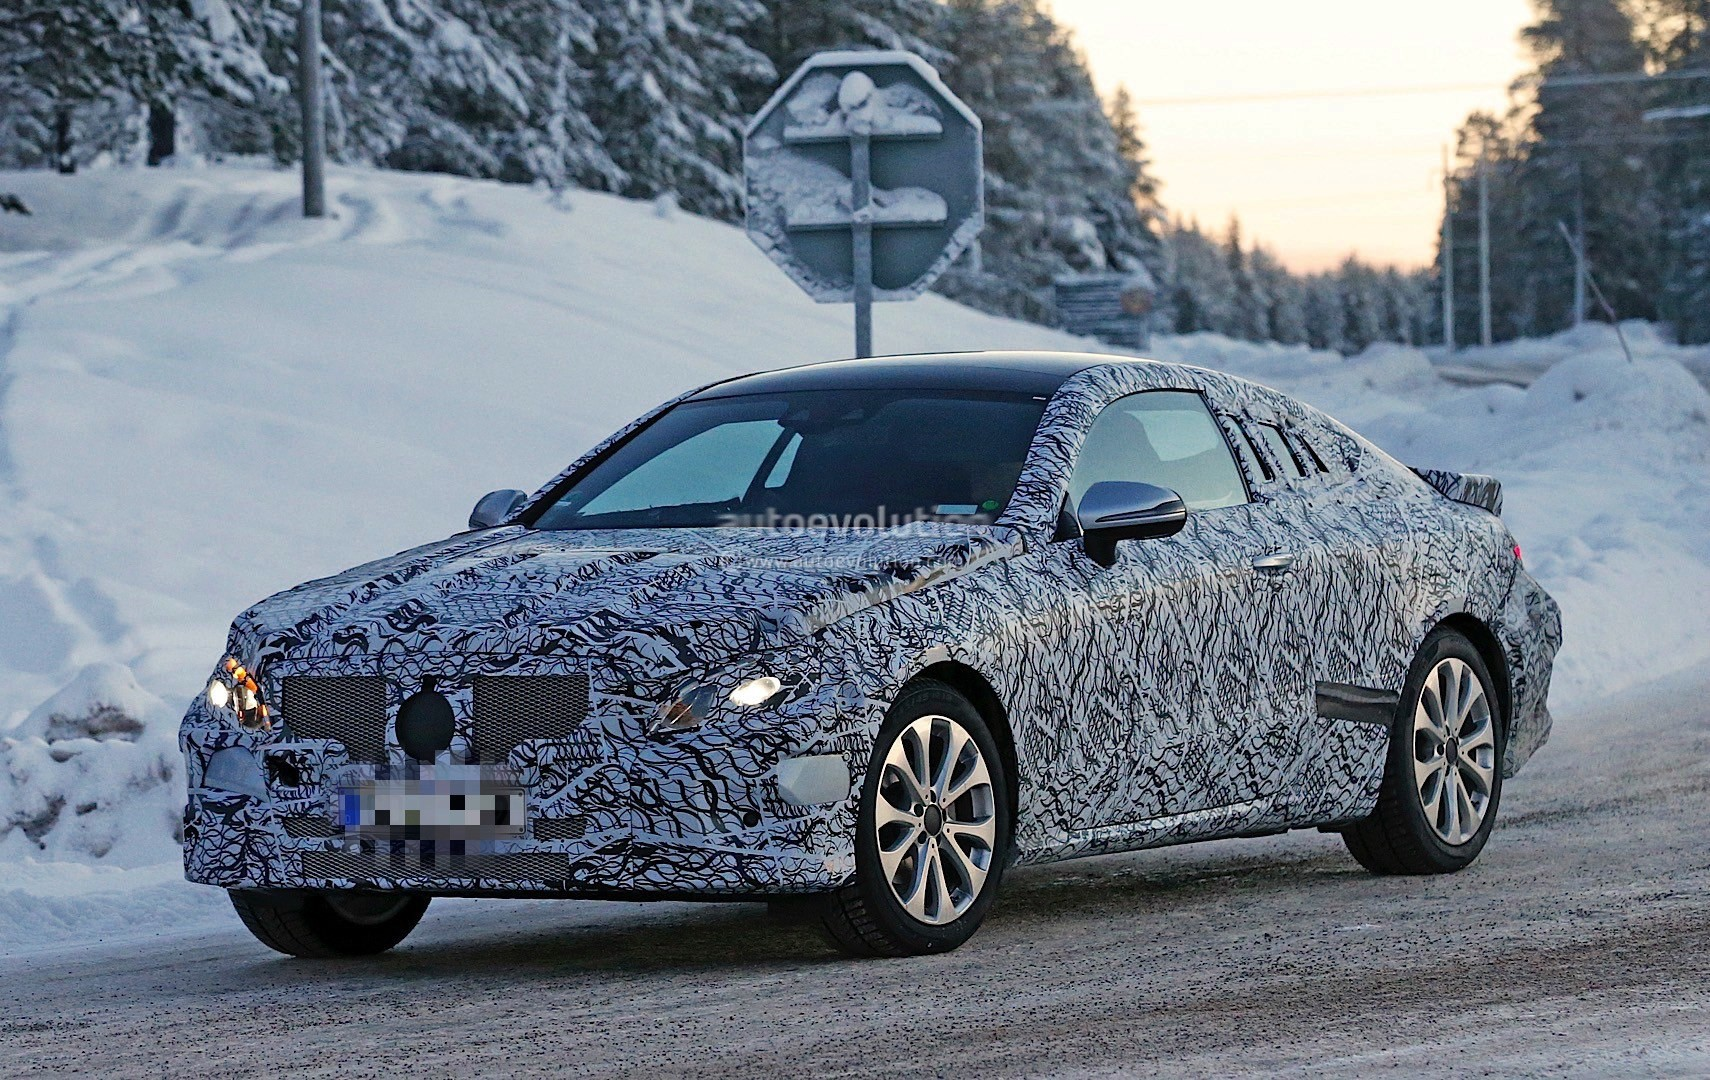 2018 MercedesBenz EClass Coupe Enjoys Some Camera Time Ahead of